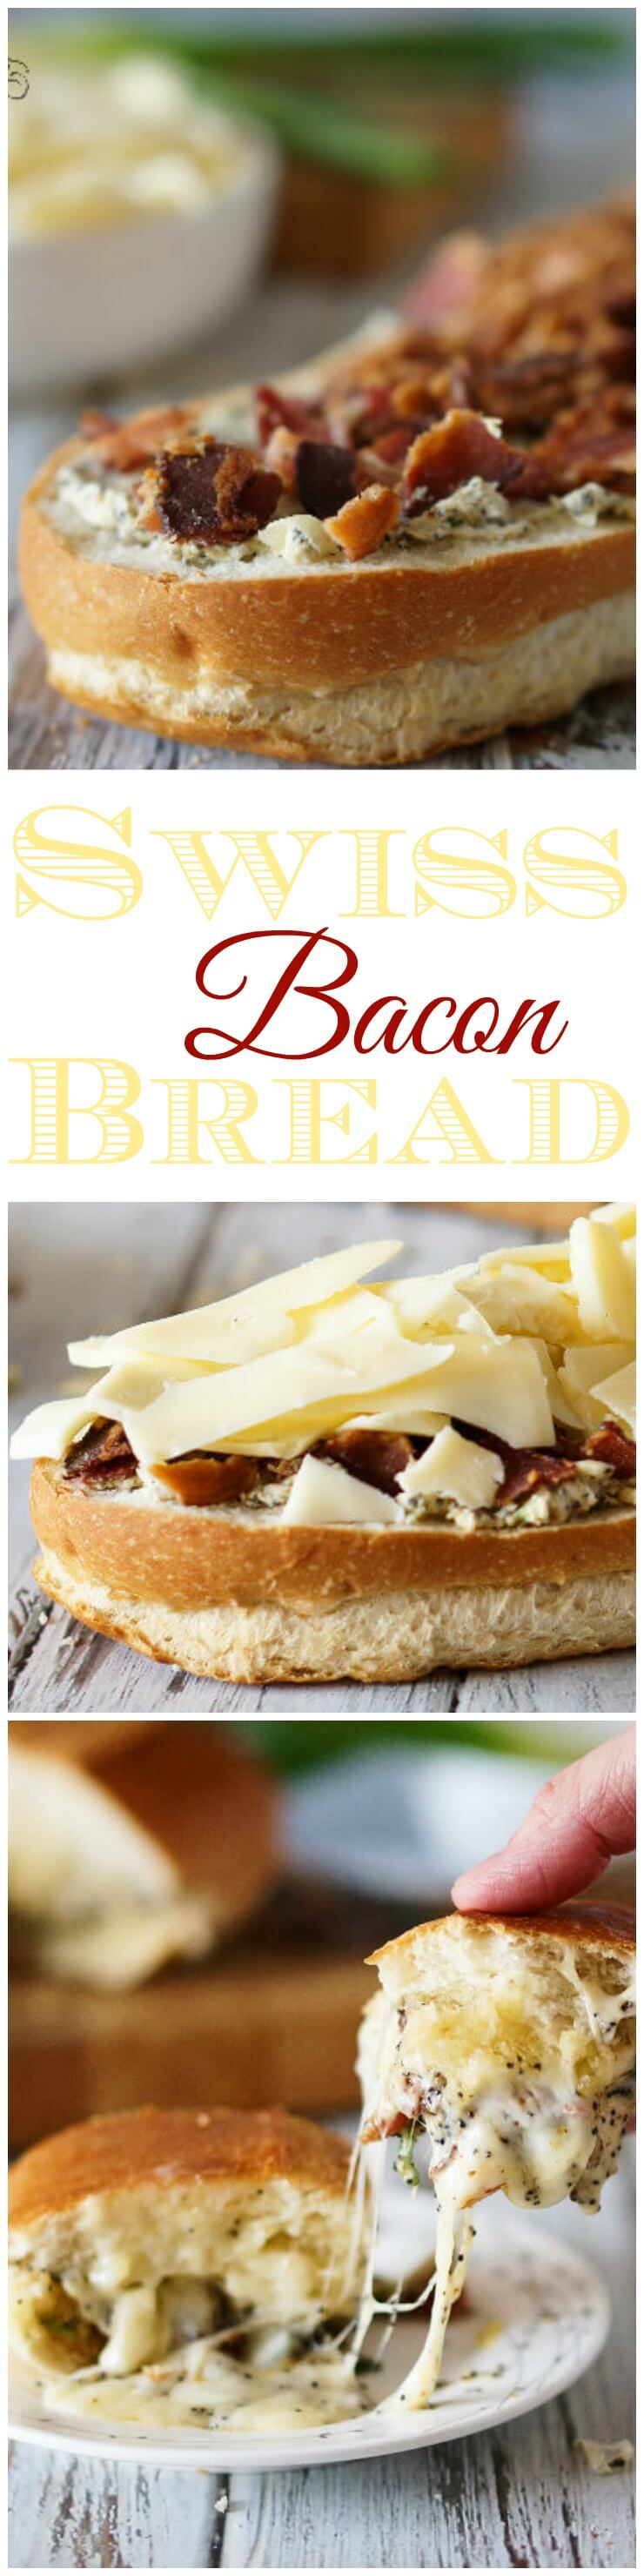 Swiss and Bacon Bread